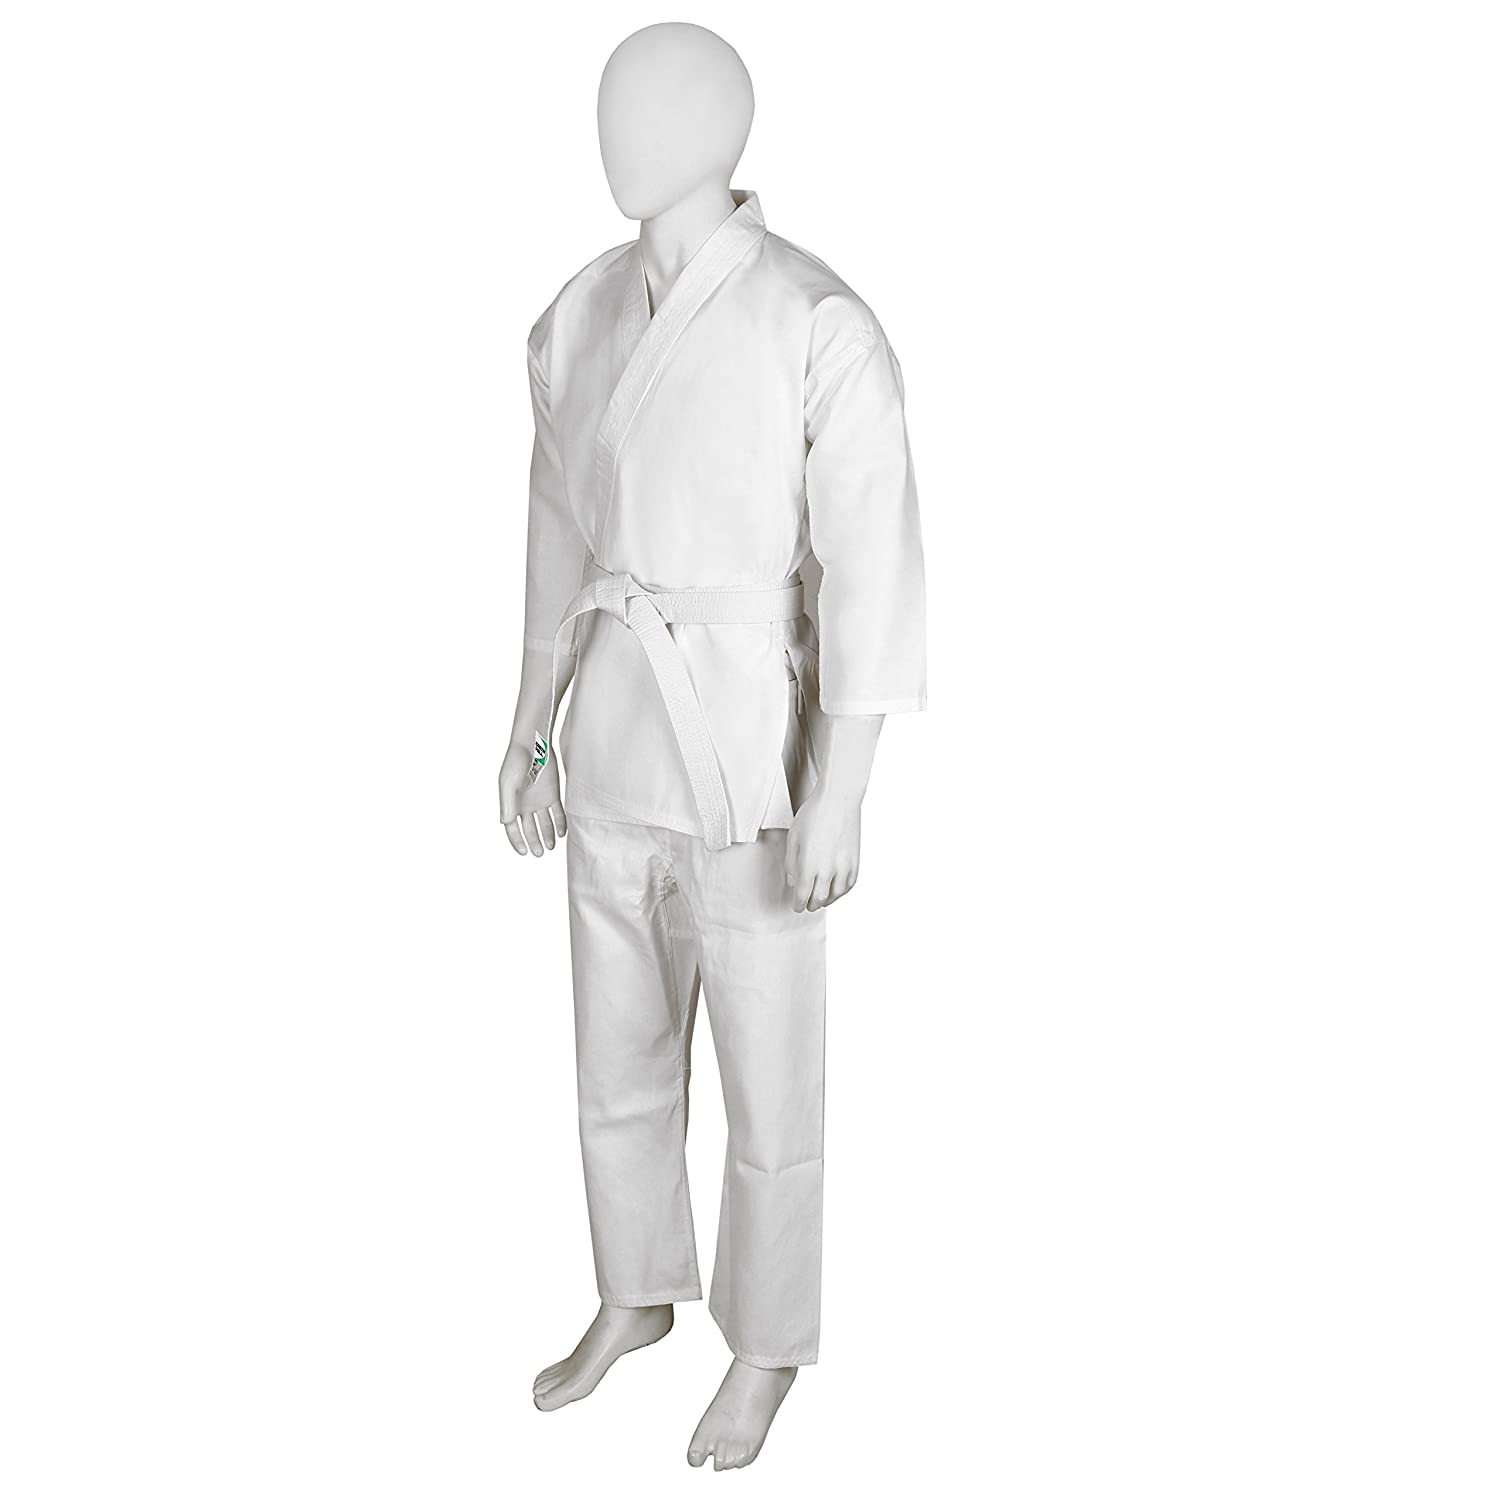 GREEN HILL Karate Suit Beginner with Belt, Karate Gi, Karate Uniform Ideal For Karate, MMA,Martial Arts,Judo and Training.